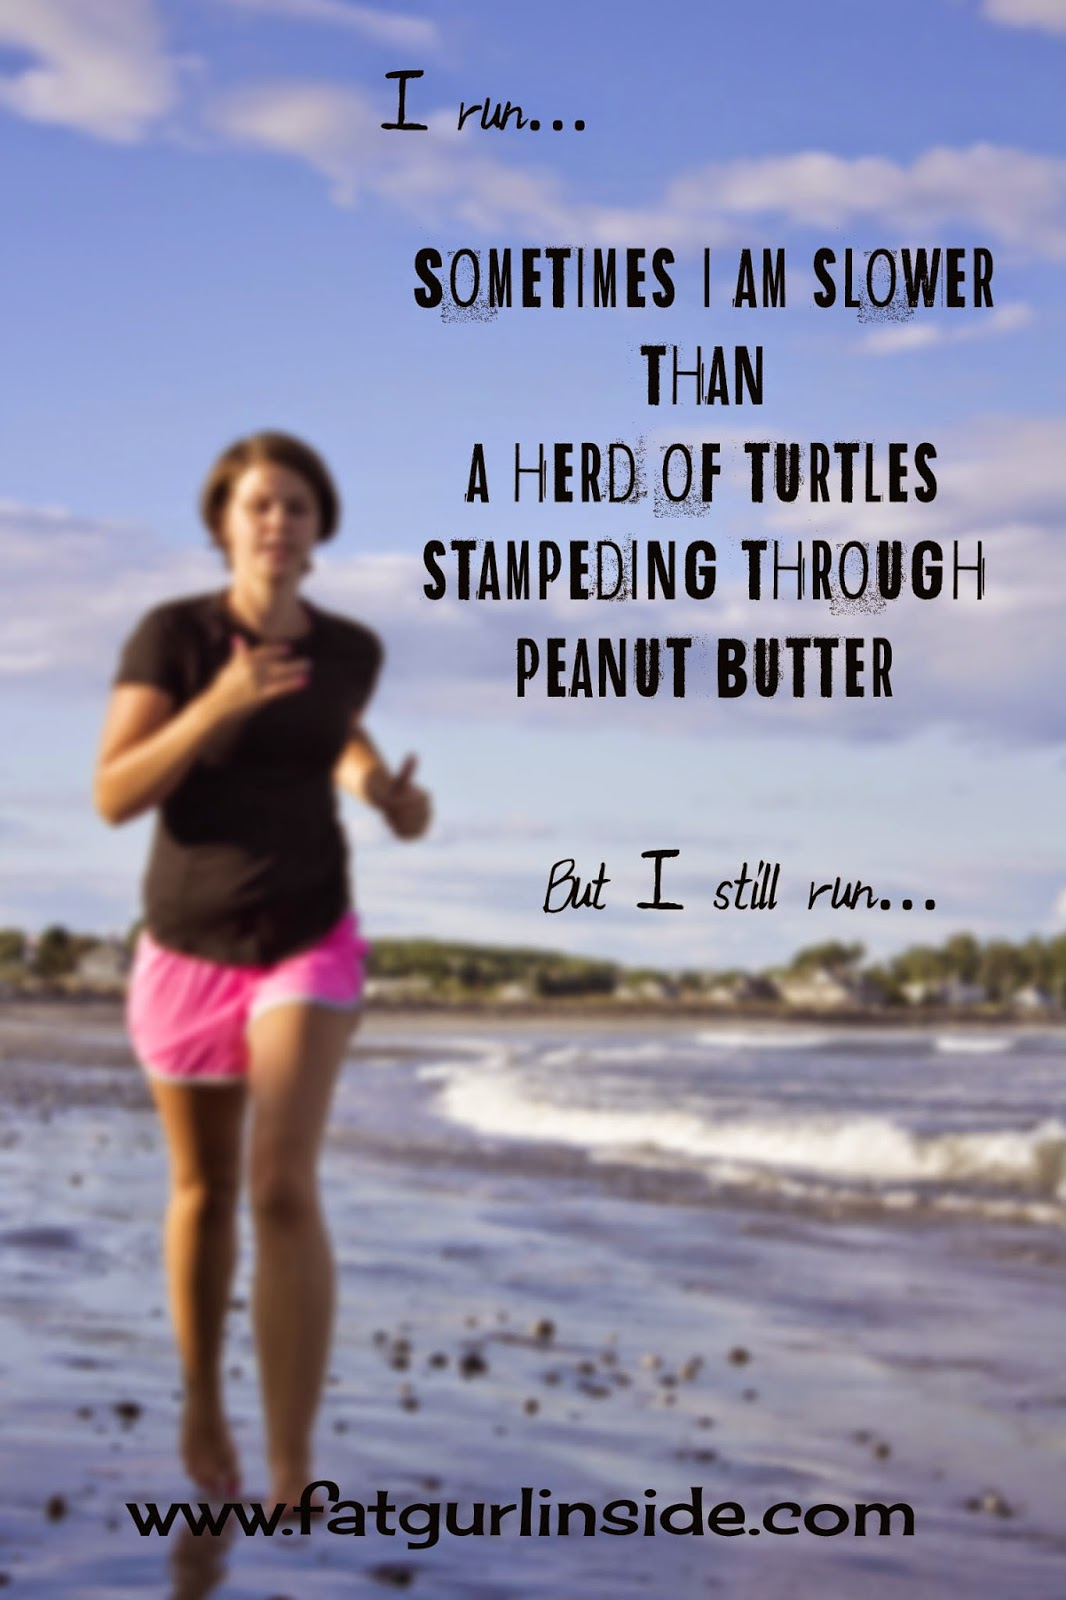 I run. I may be slower than a herd of turtles stampeding through peanut butter, but I run!